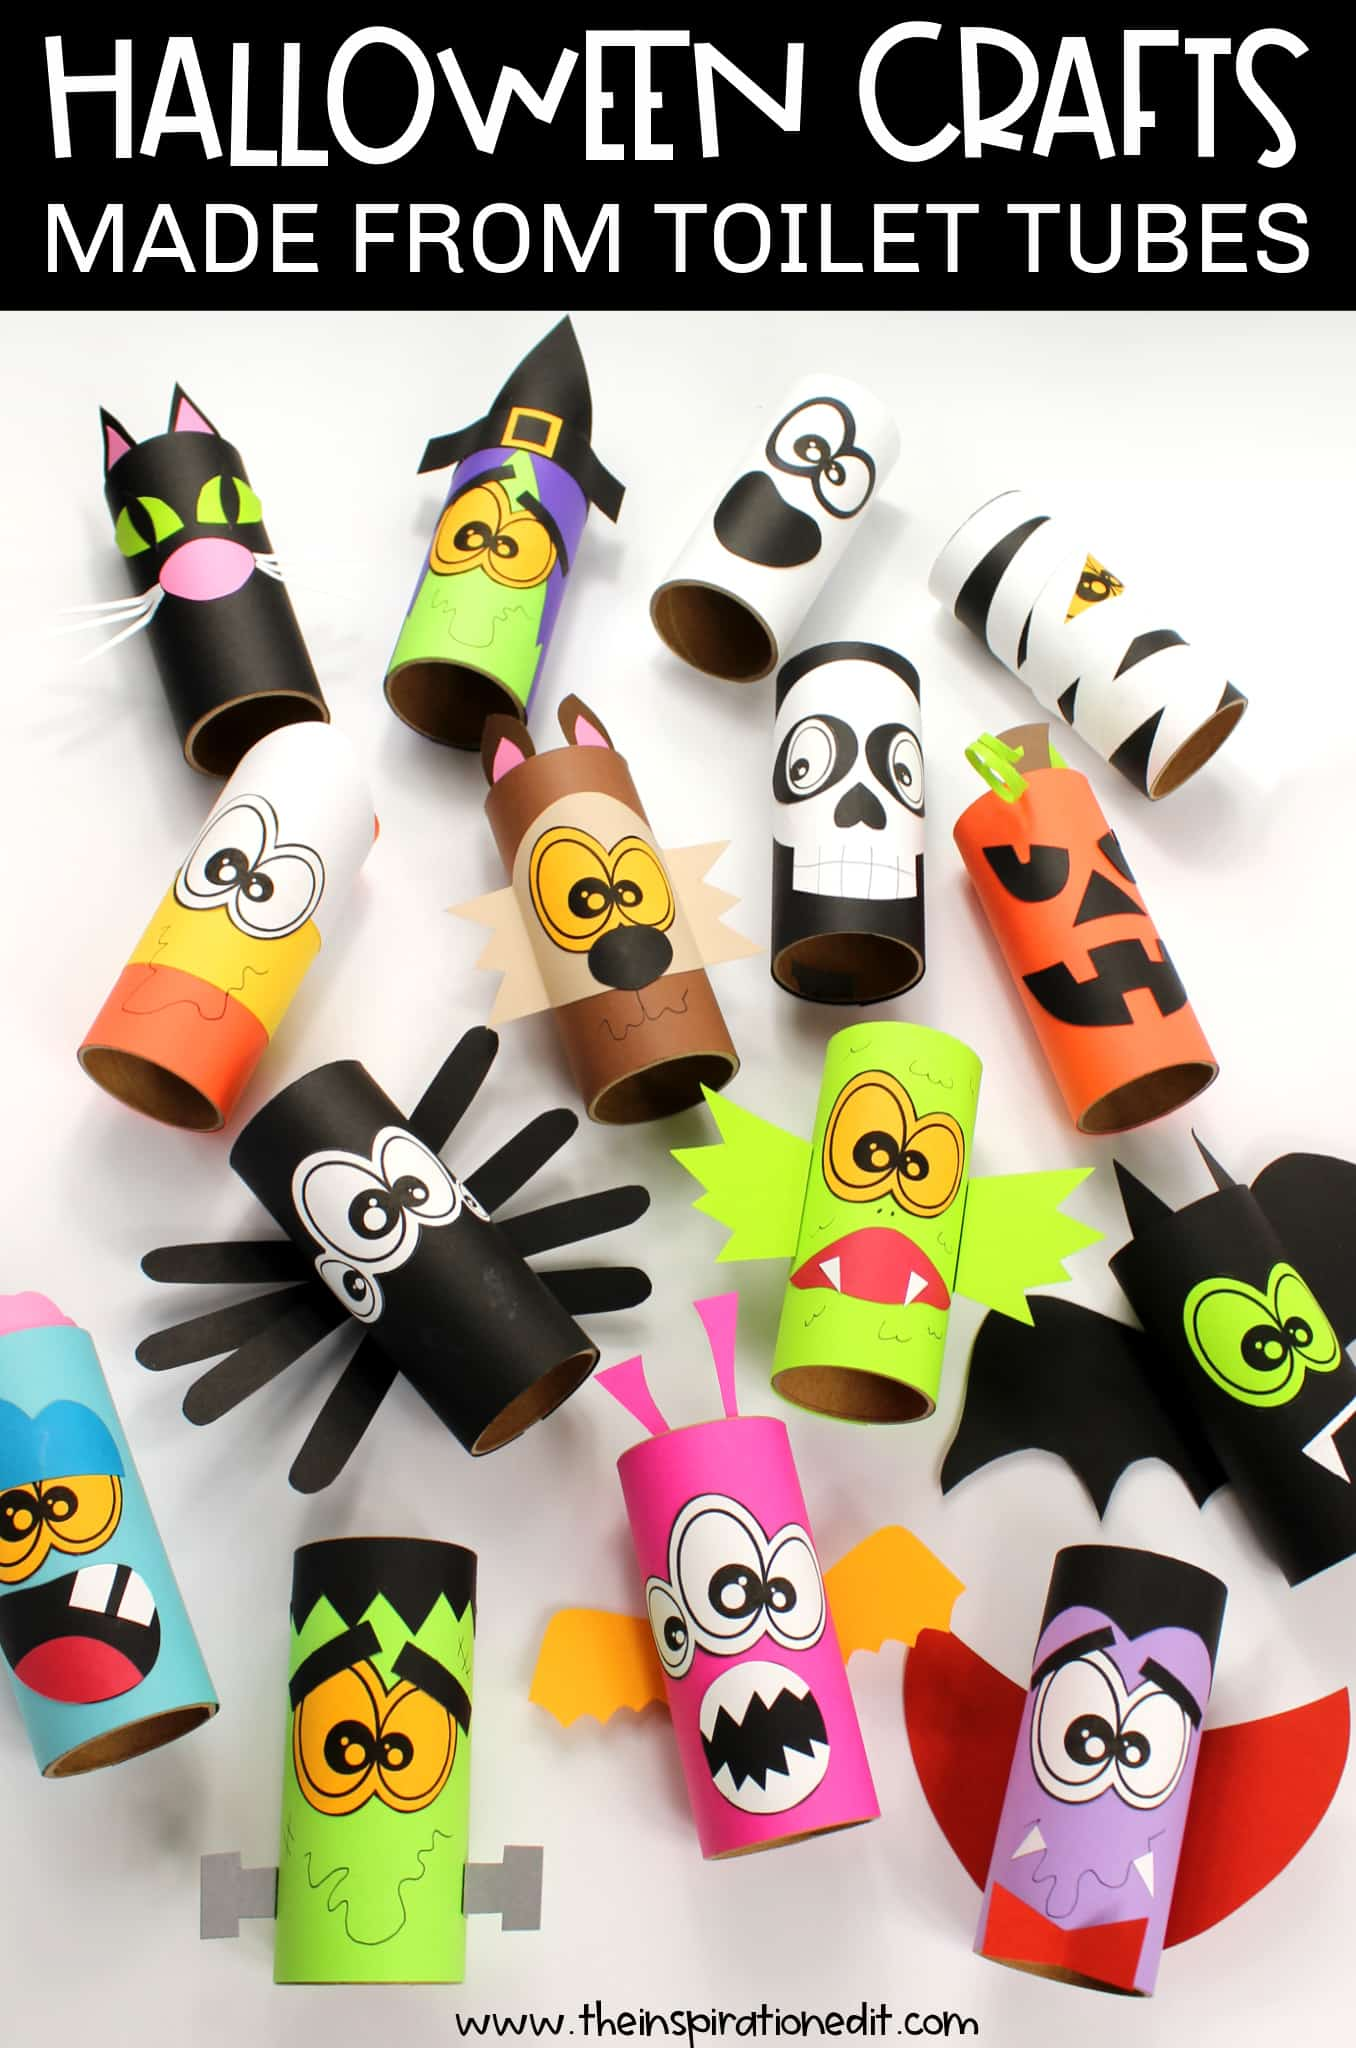 Halloween crafts made from toilet tubes